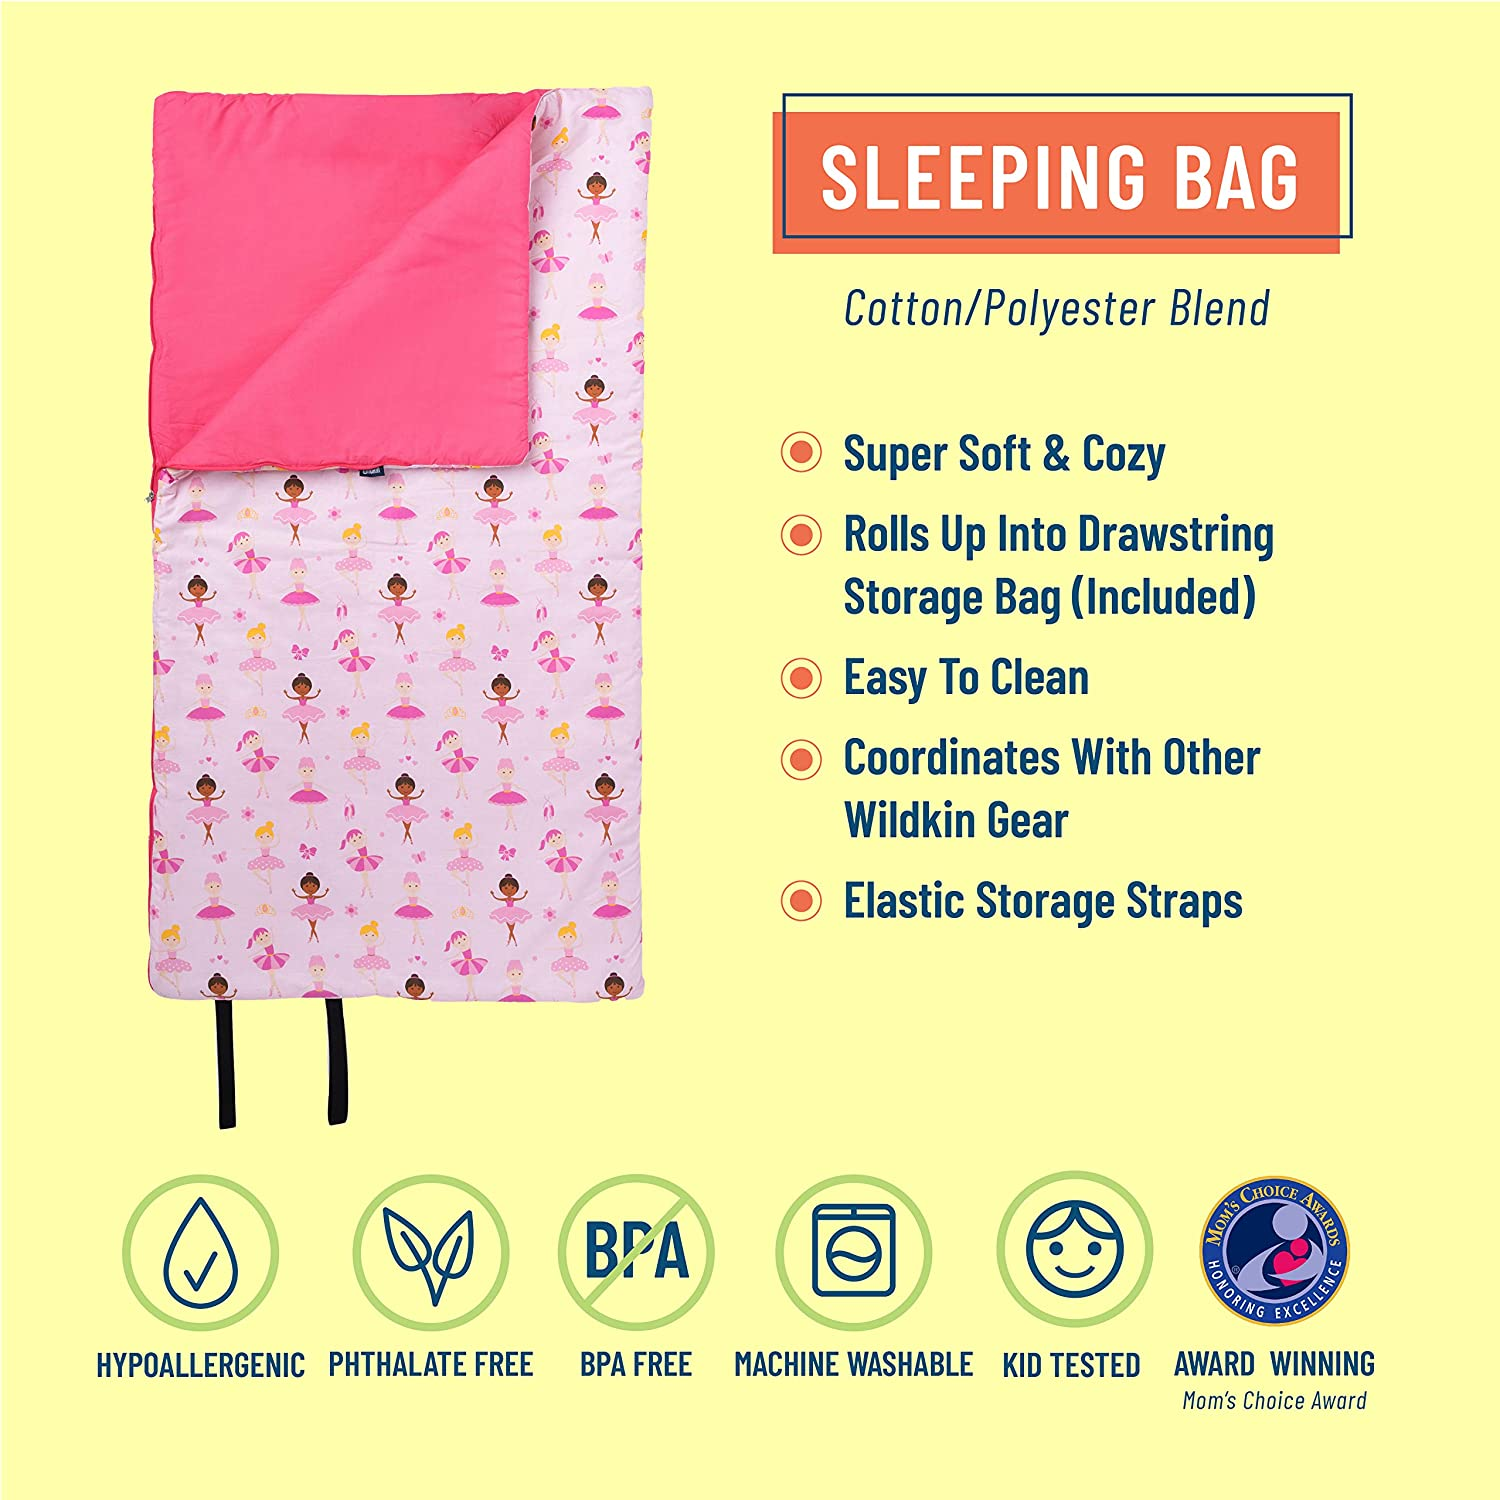 Ballerina Camping /& Overnight Travel Measures 57 x 30 x 1.5 Inches Perfect Size for Parties Cotton Blend Materials Sleeping Bag BPA-Free Wildkin Kids Sleeping Bags for Boys and Girls